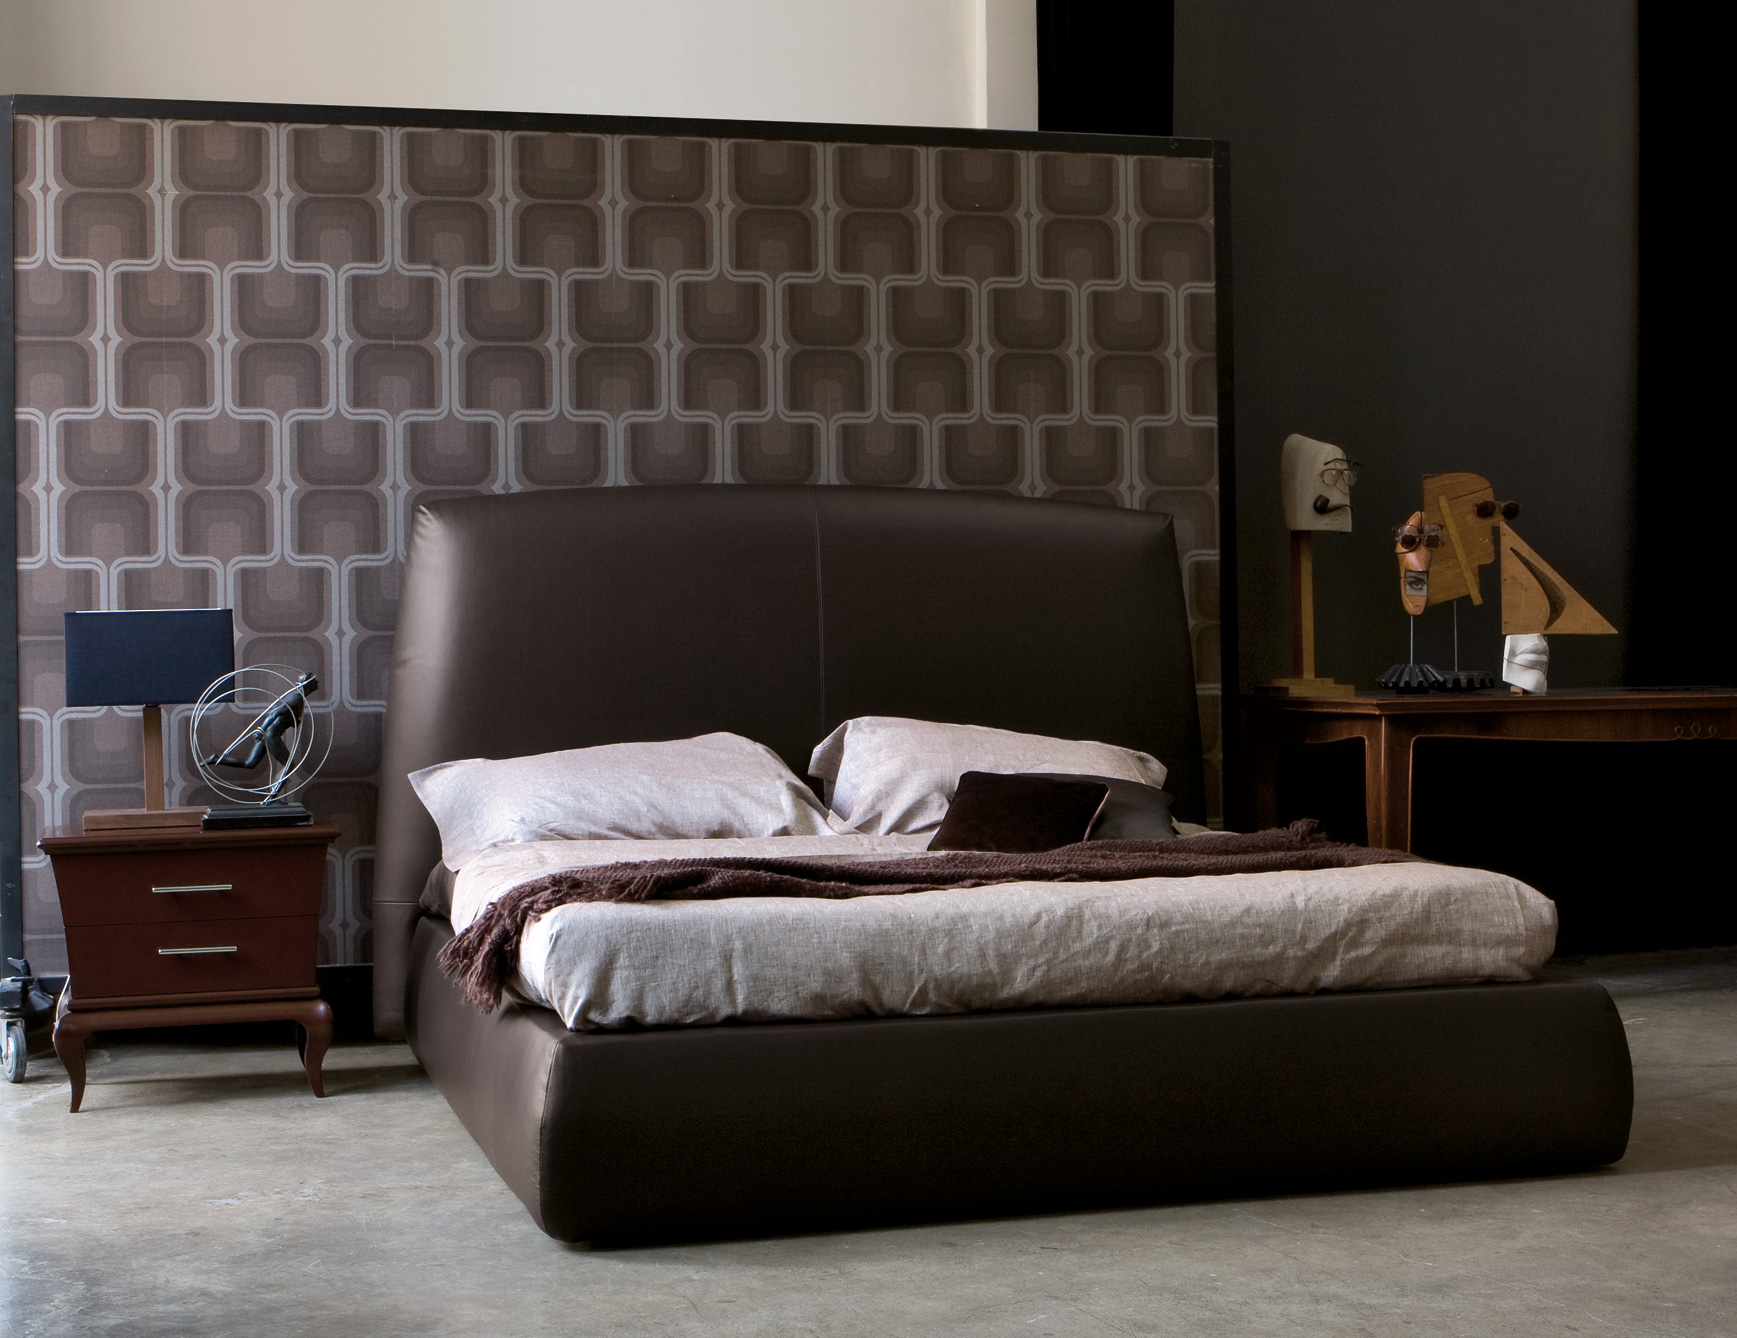 Contemporary Bedroom Furniture 10 Ideas. Italian Upholstered Bed Shown In  Brown Leather.